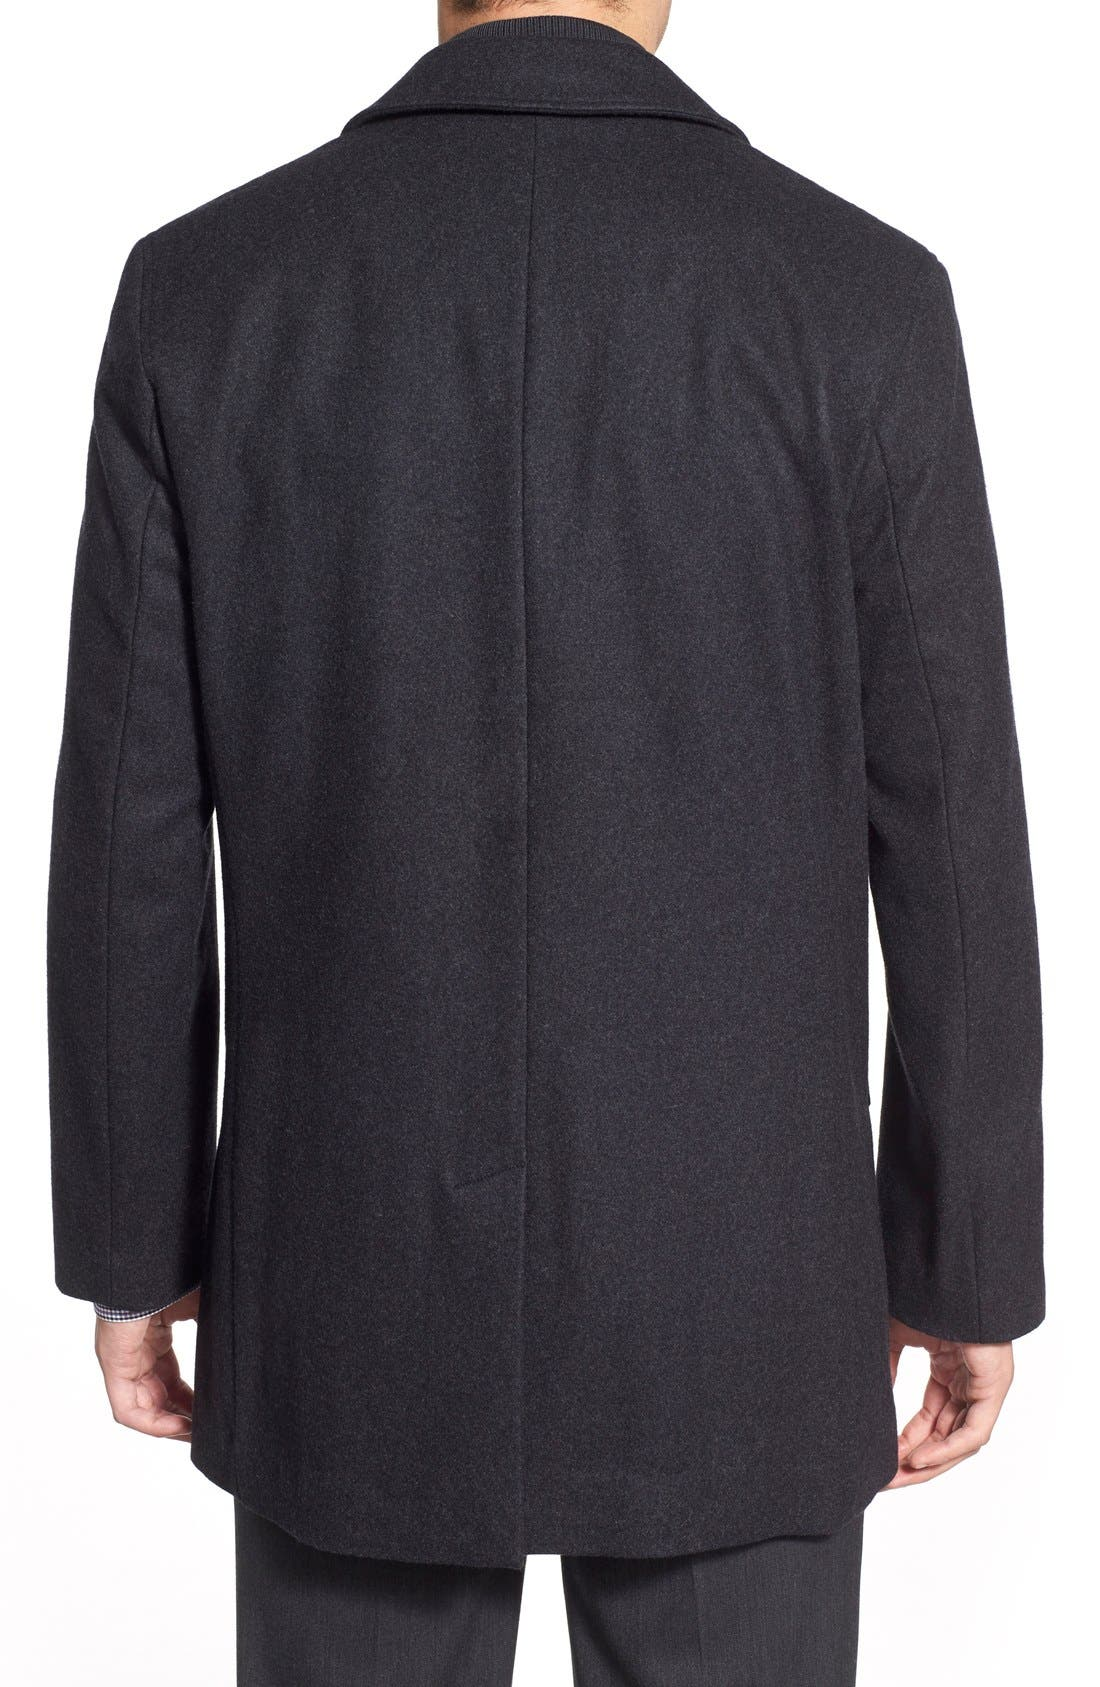 Wool Blend Topcoat with Inset Knit Bib,                             Alternate thumbnail 4, color,